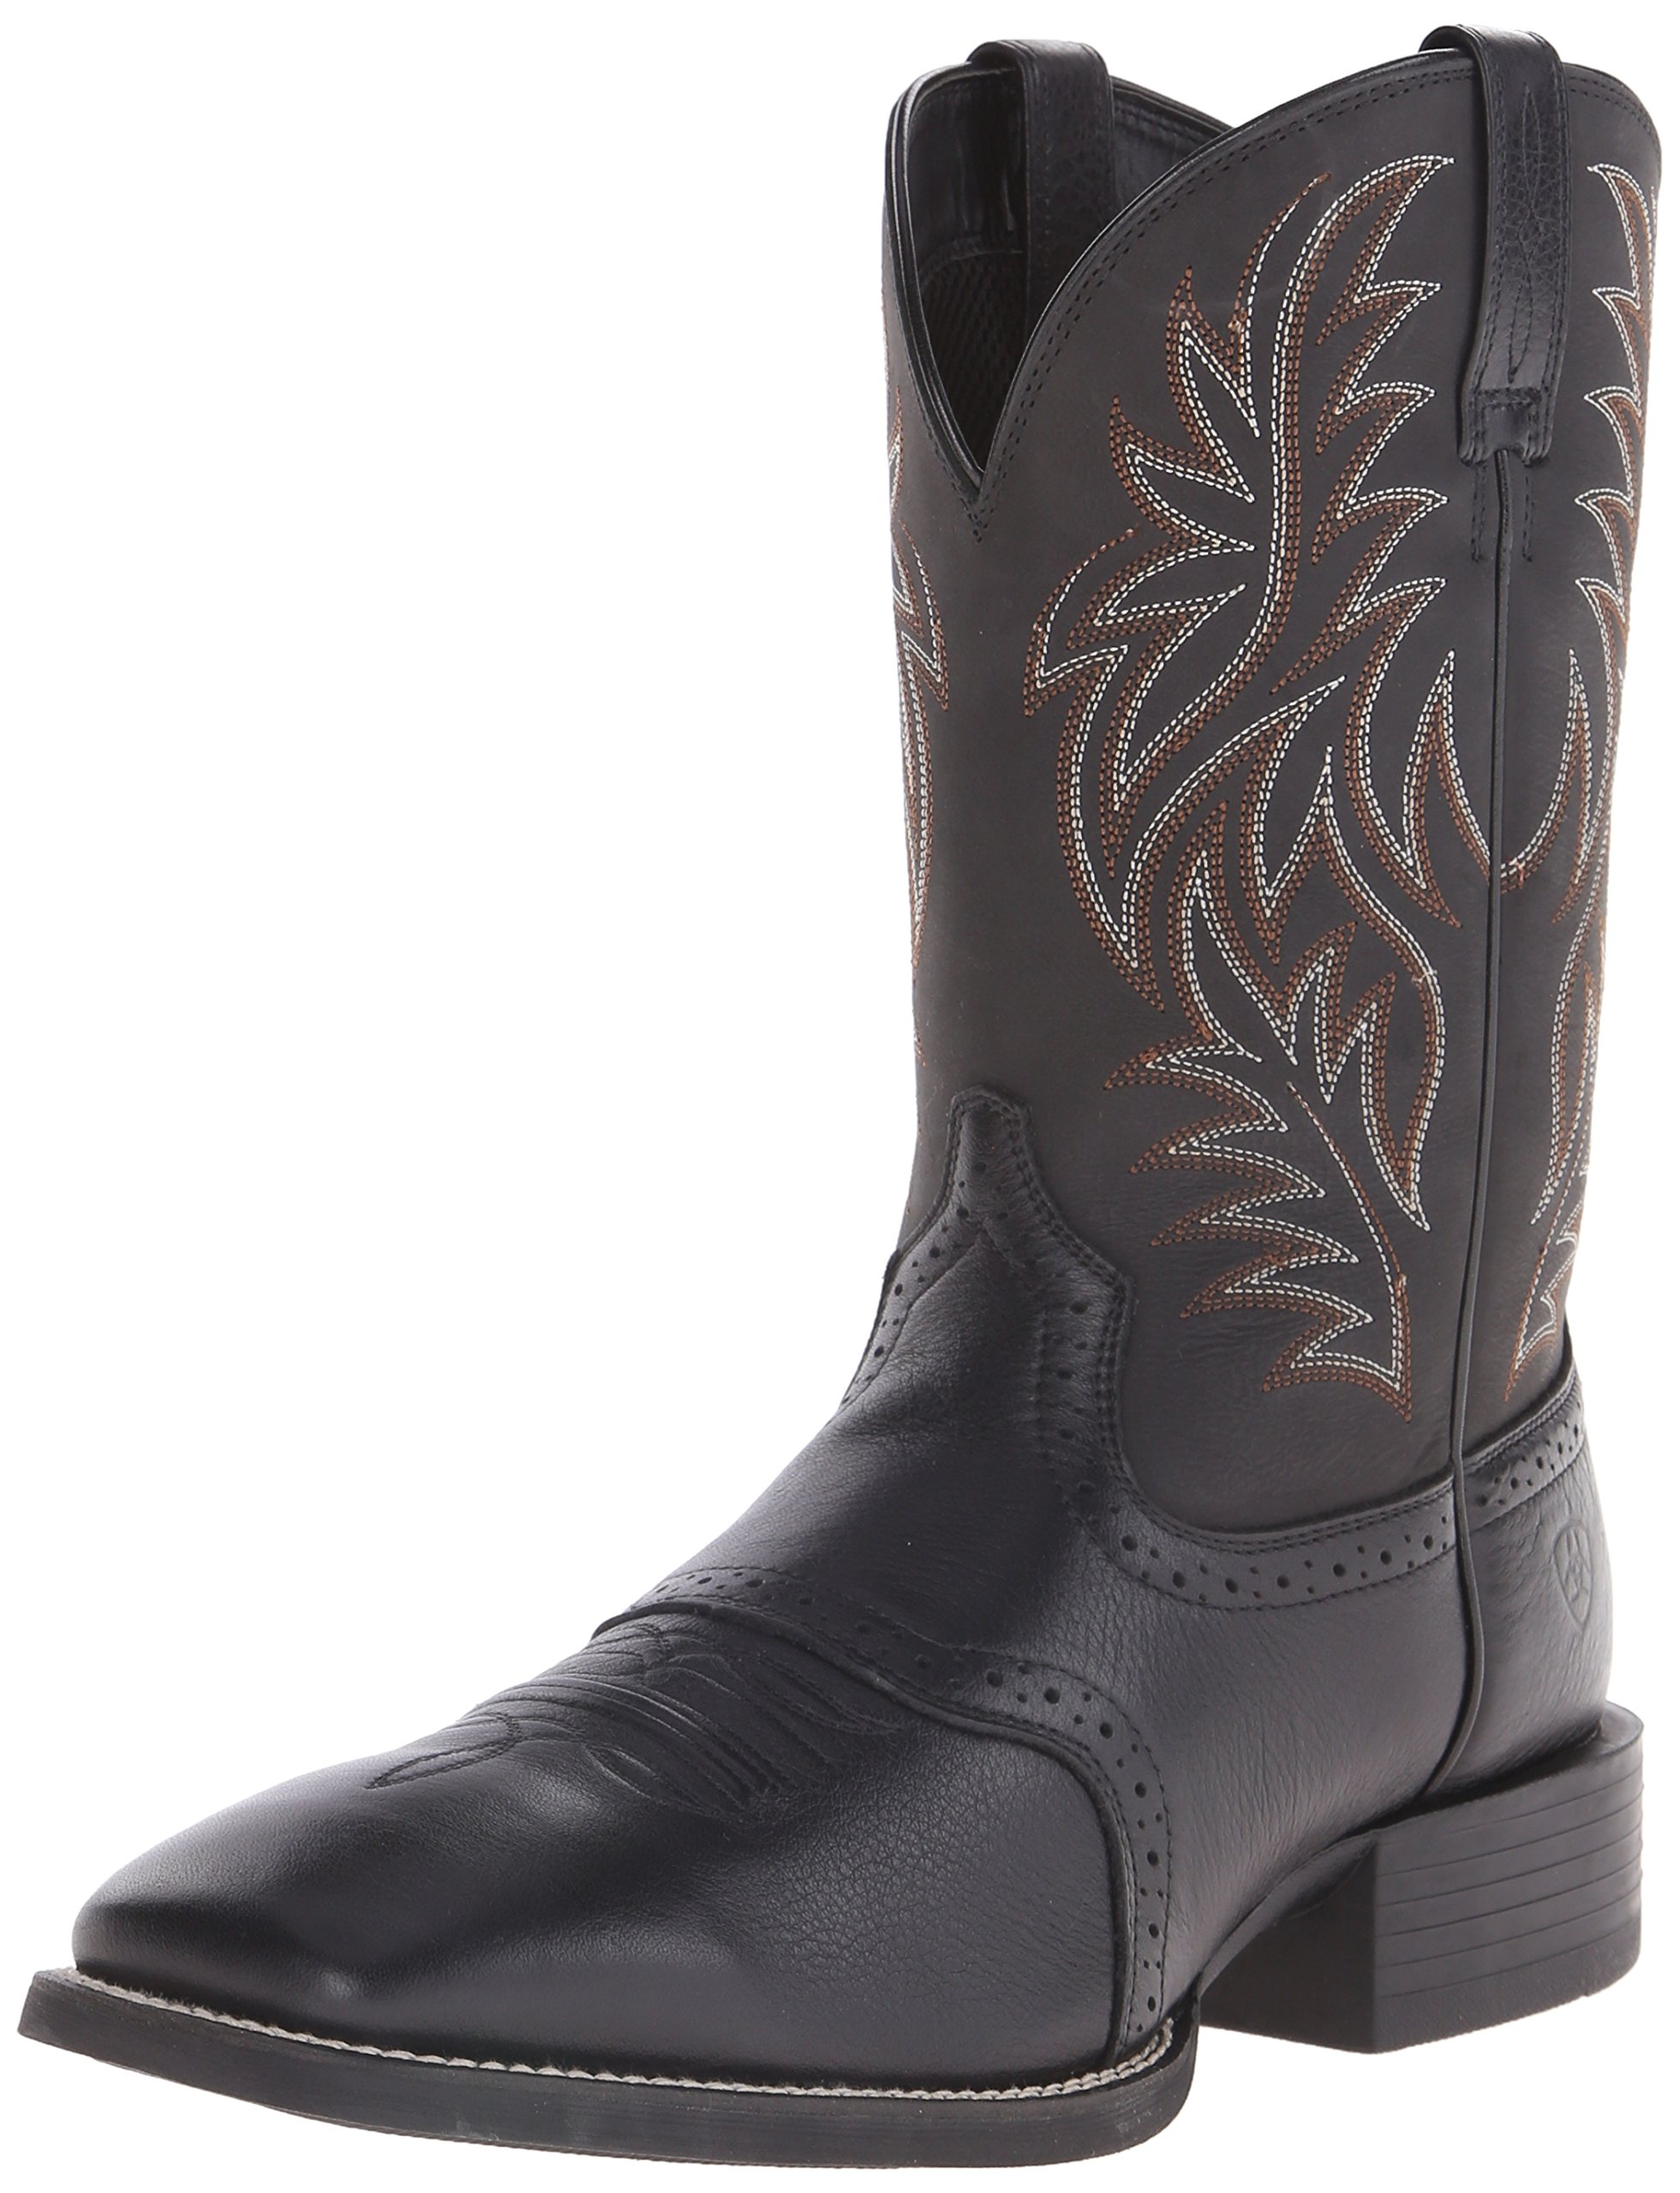 Ariat Men's Sport Western Cowboy Boot, Black, 12 D(M) US